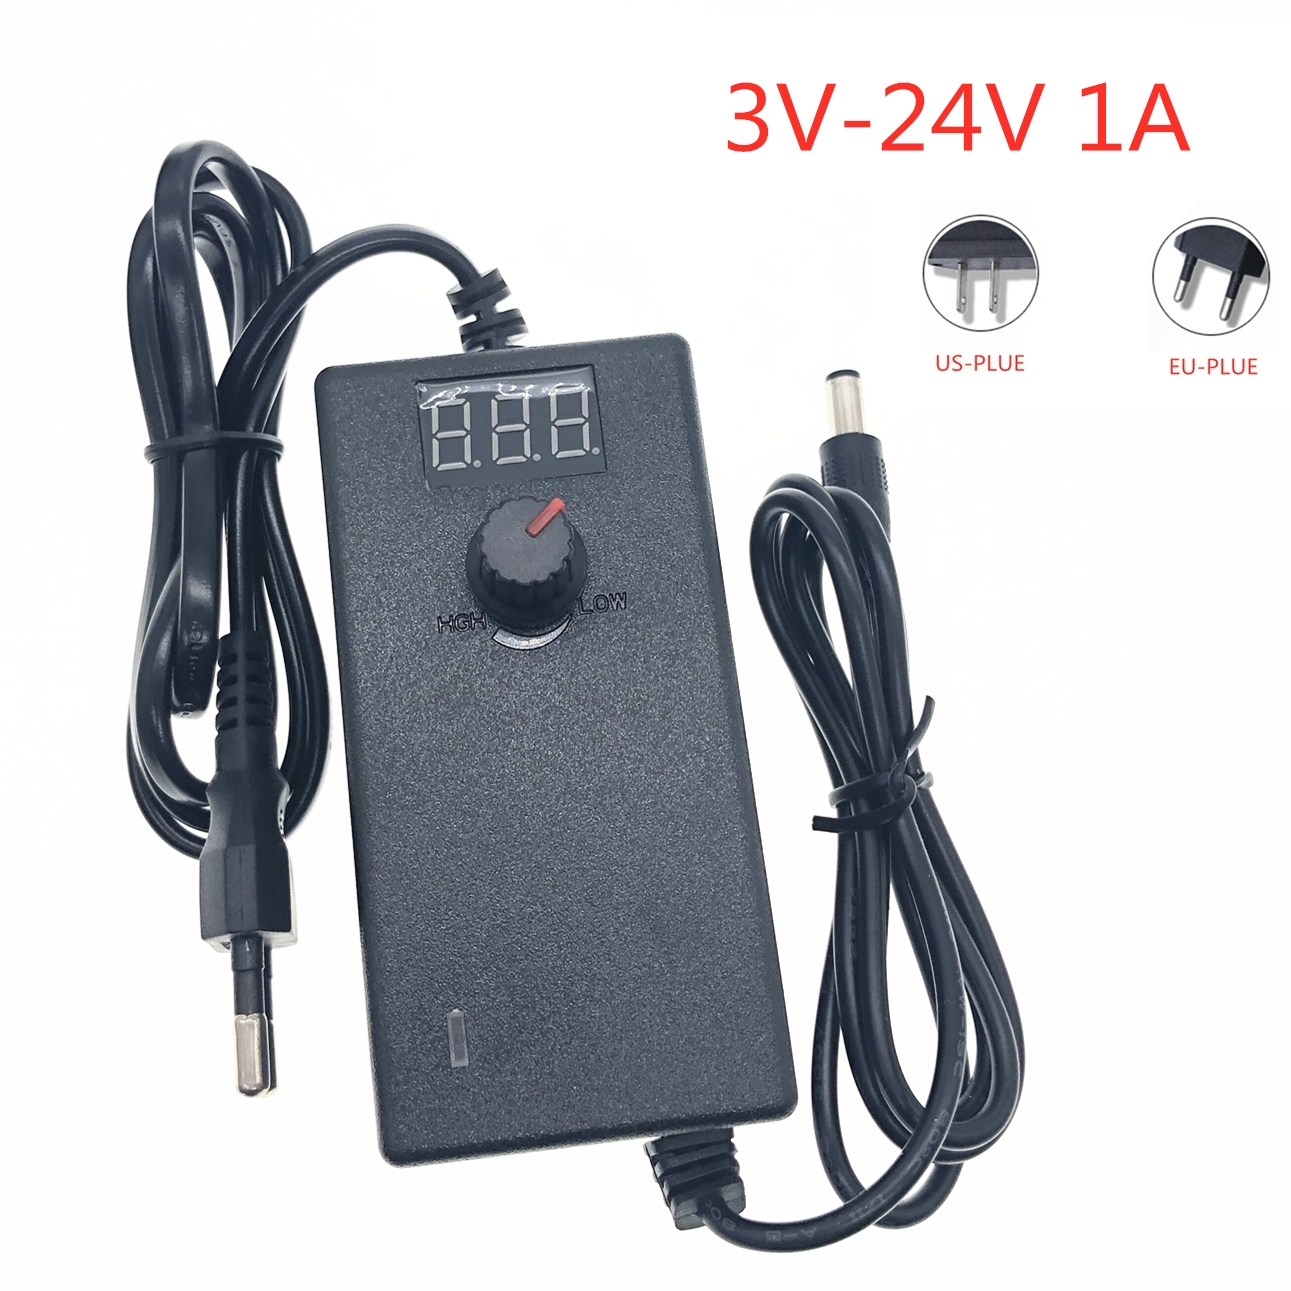 Adjustable <font><b>AC</b></font> to <font><b>DC</b></font> 3V 9V 12V 24V 36V 1A 2A Power Universal Adapter with Display Power <font><b>3</b></font> 9 12 24 36 <font><b>V</b></font> 1A 2A Power Dispenser image